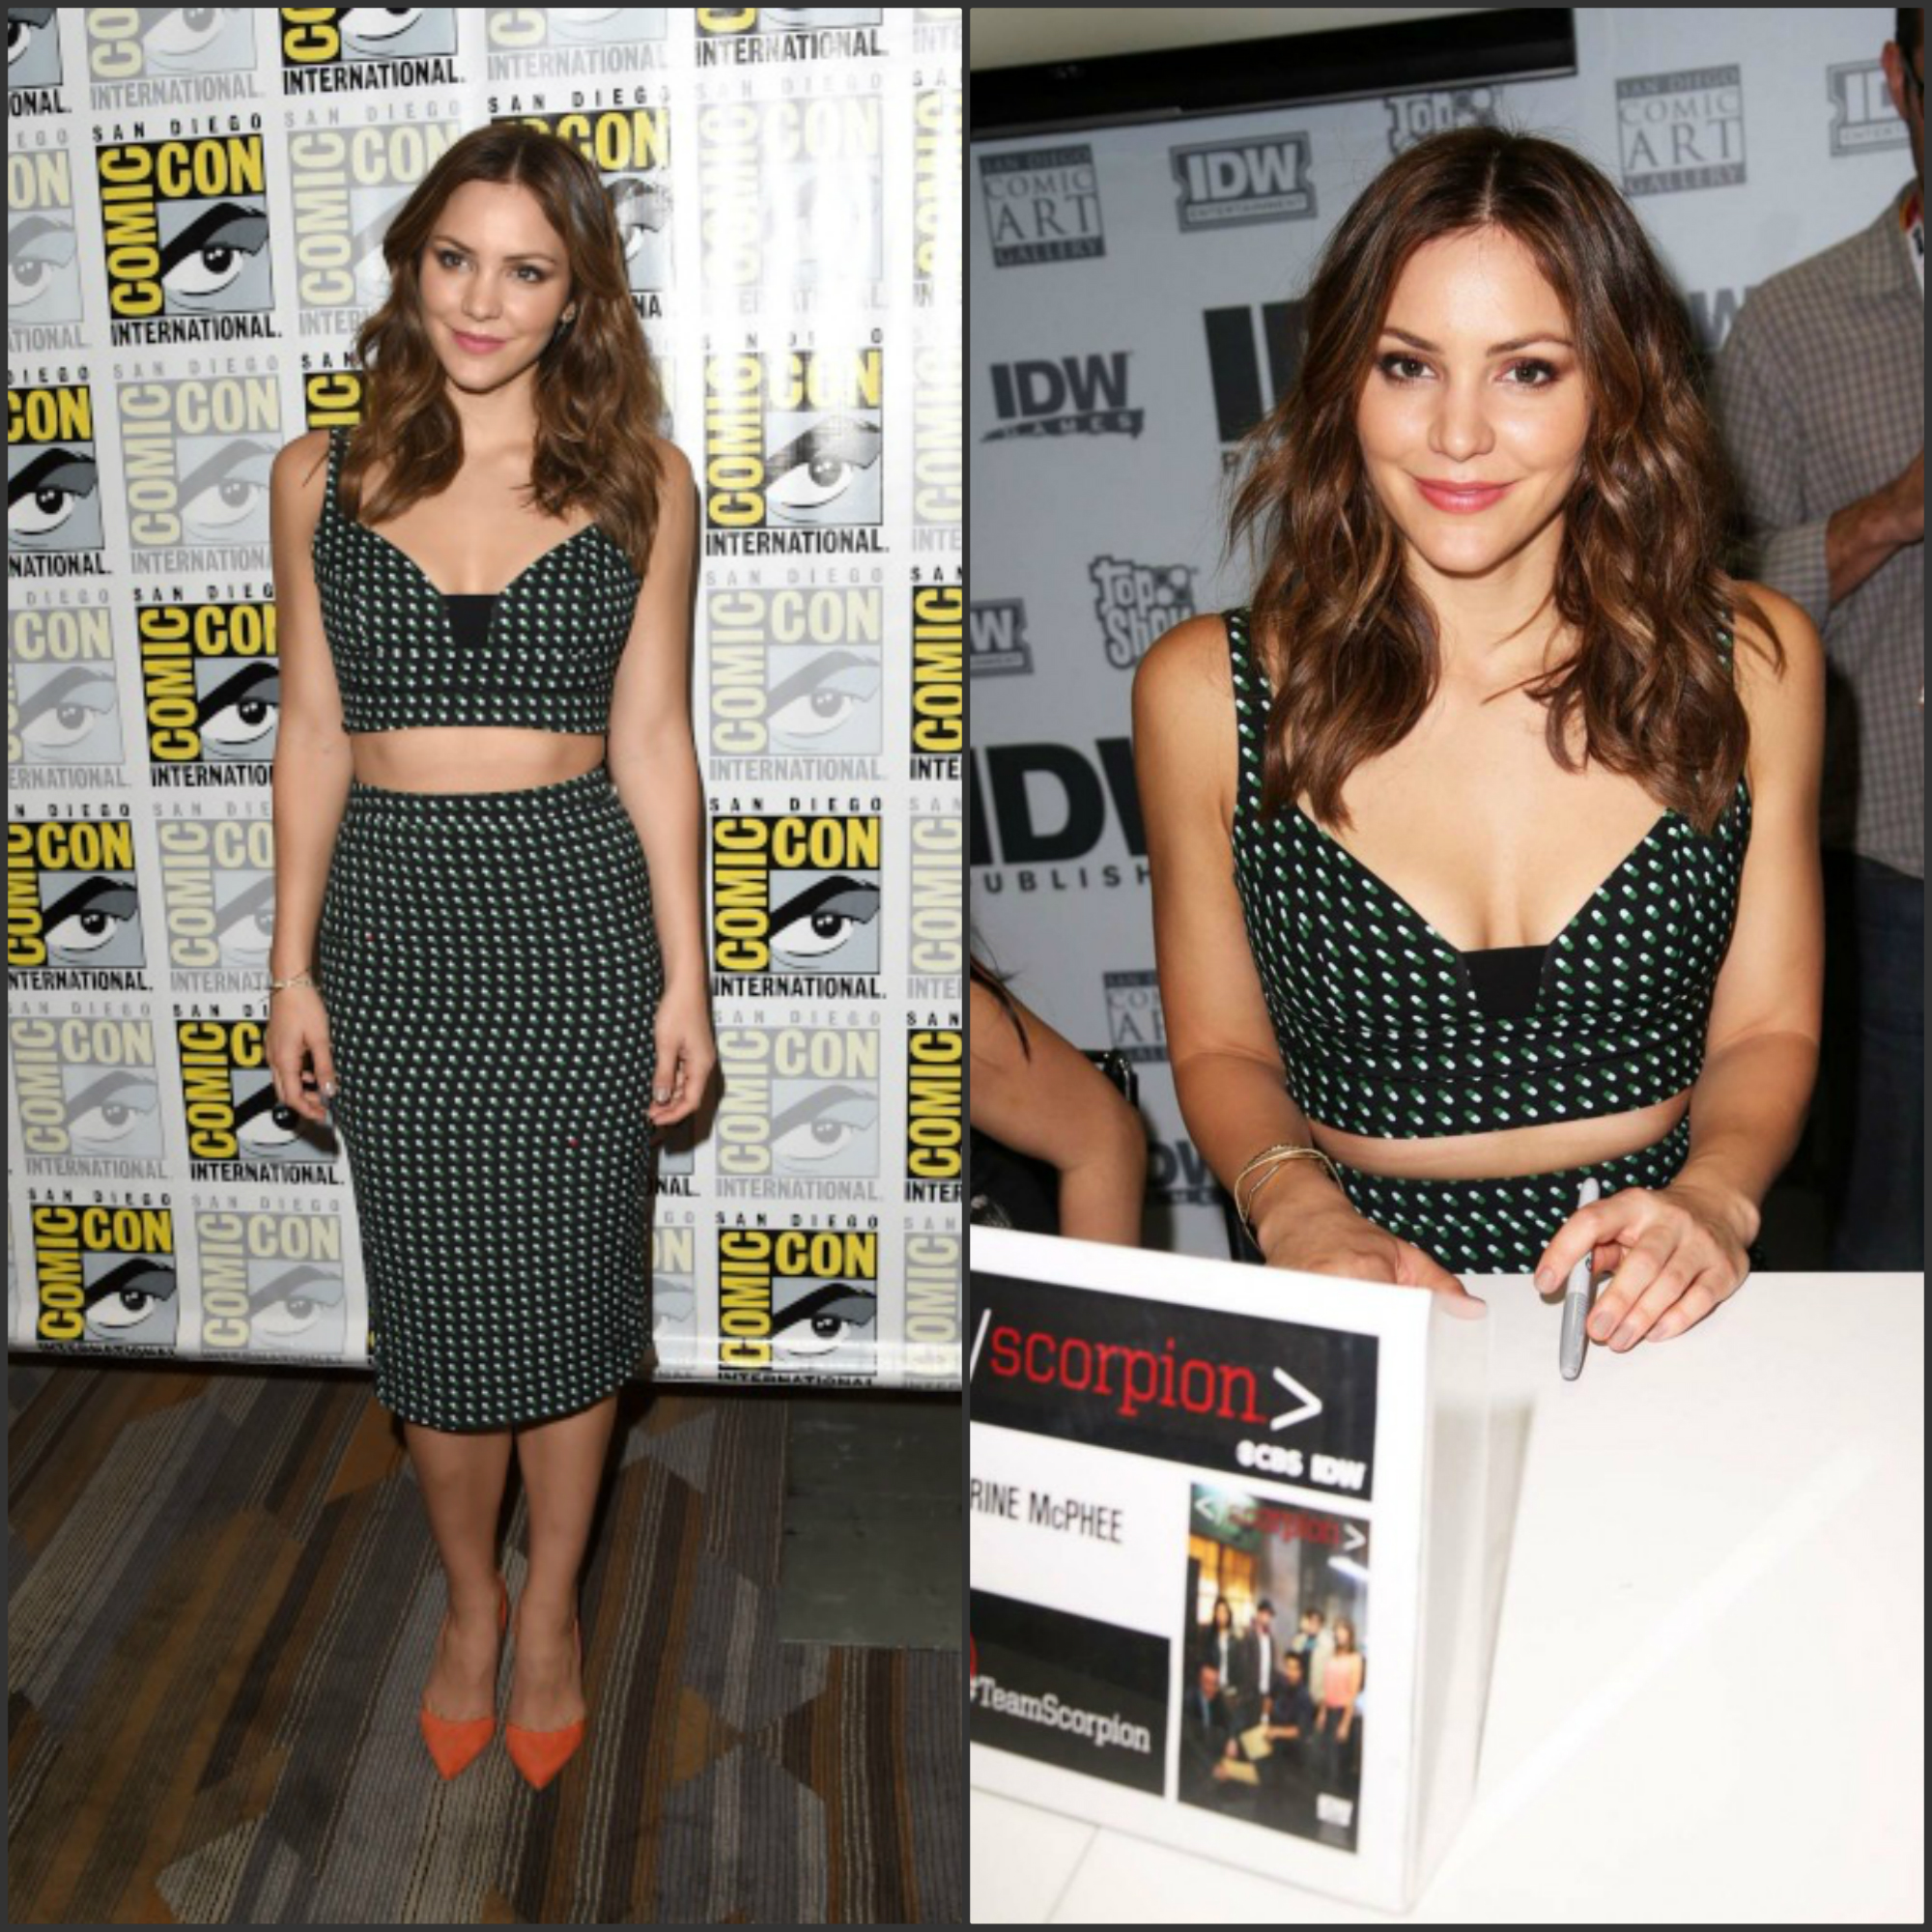 KATHERINE-MCPHEE-SCORPION-SIGNING-AND-presentation-at-the-2015-comic-con-in-san-diego